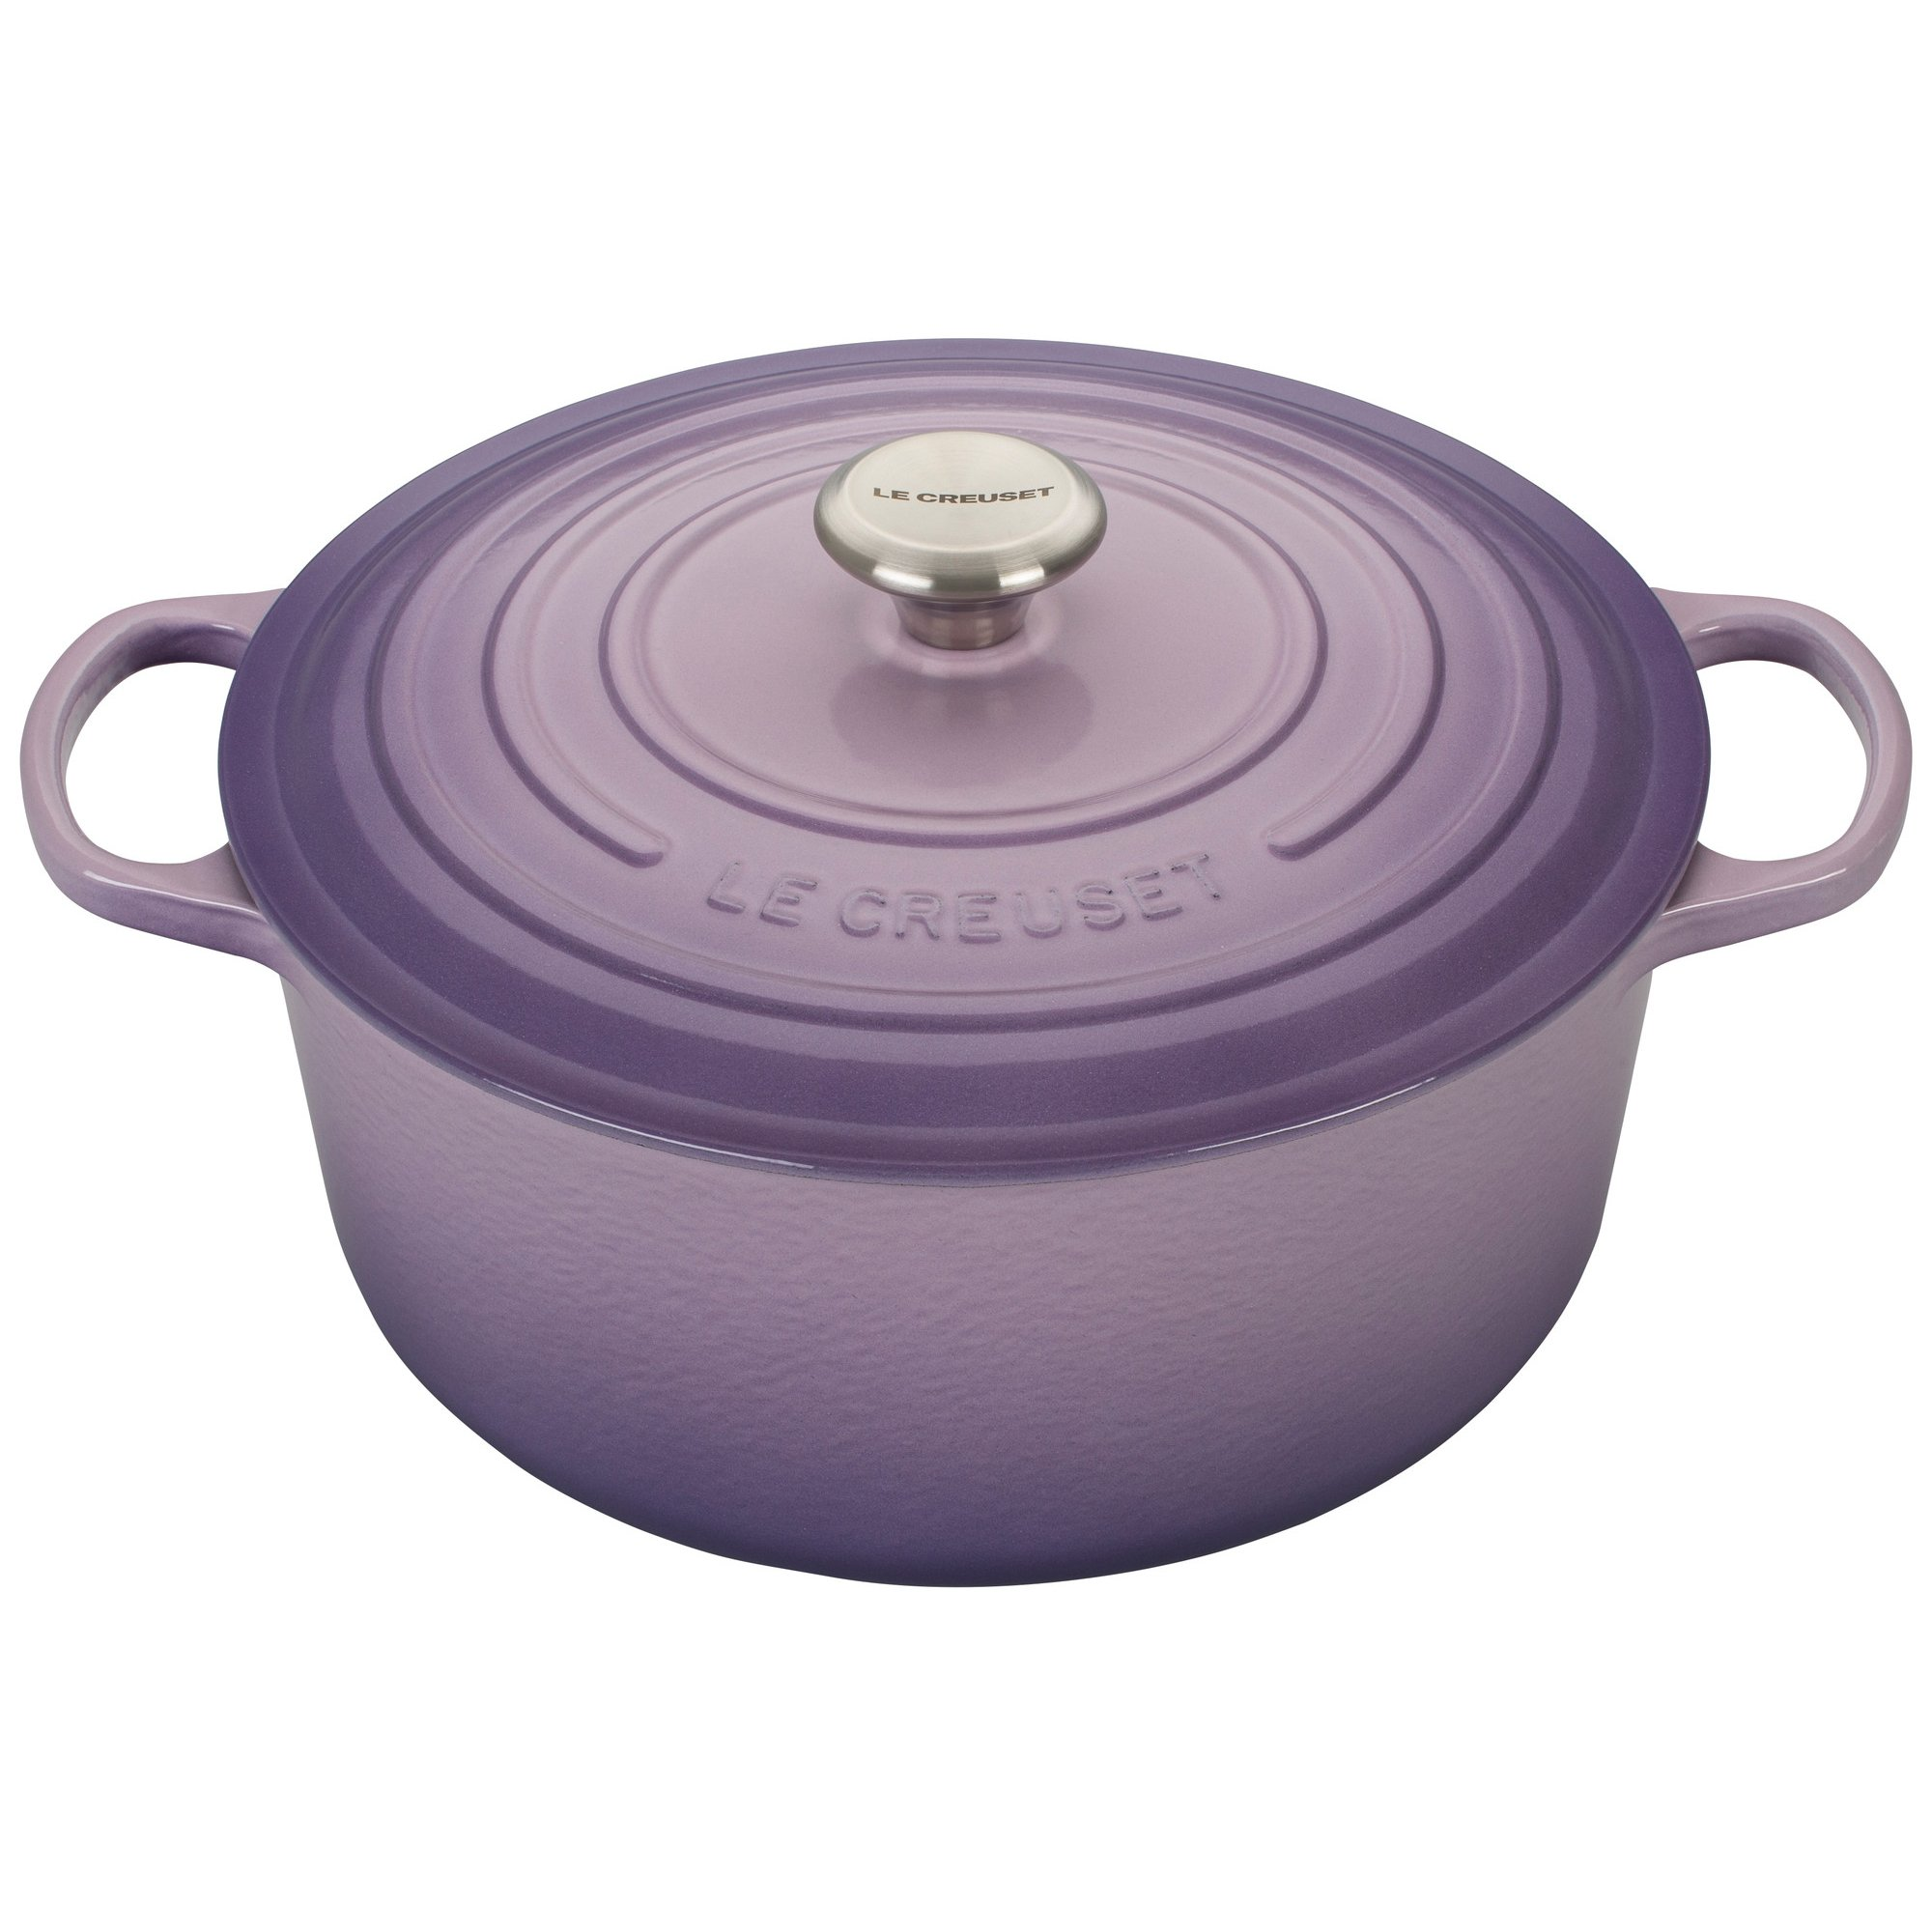 Le Creuset Signature Provence Enameled Cast Iron 7.25 Quart Round Dutch Oven